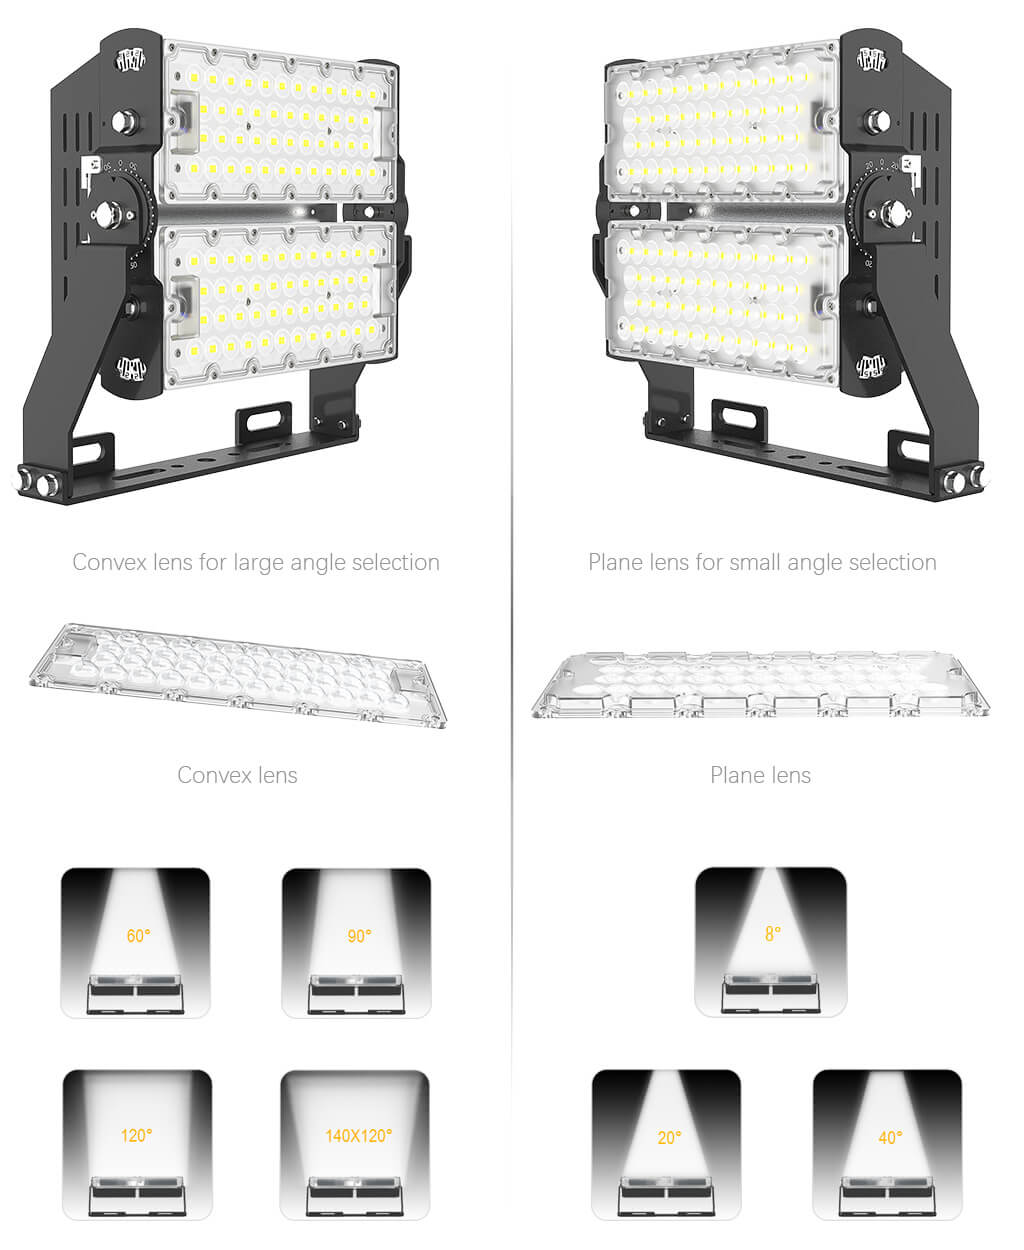 with angle adjustalbe quality led flood lights series manufacturers for field lighting-13